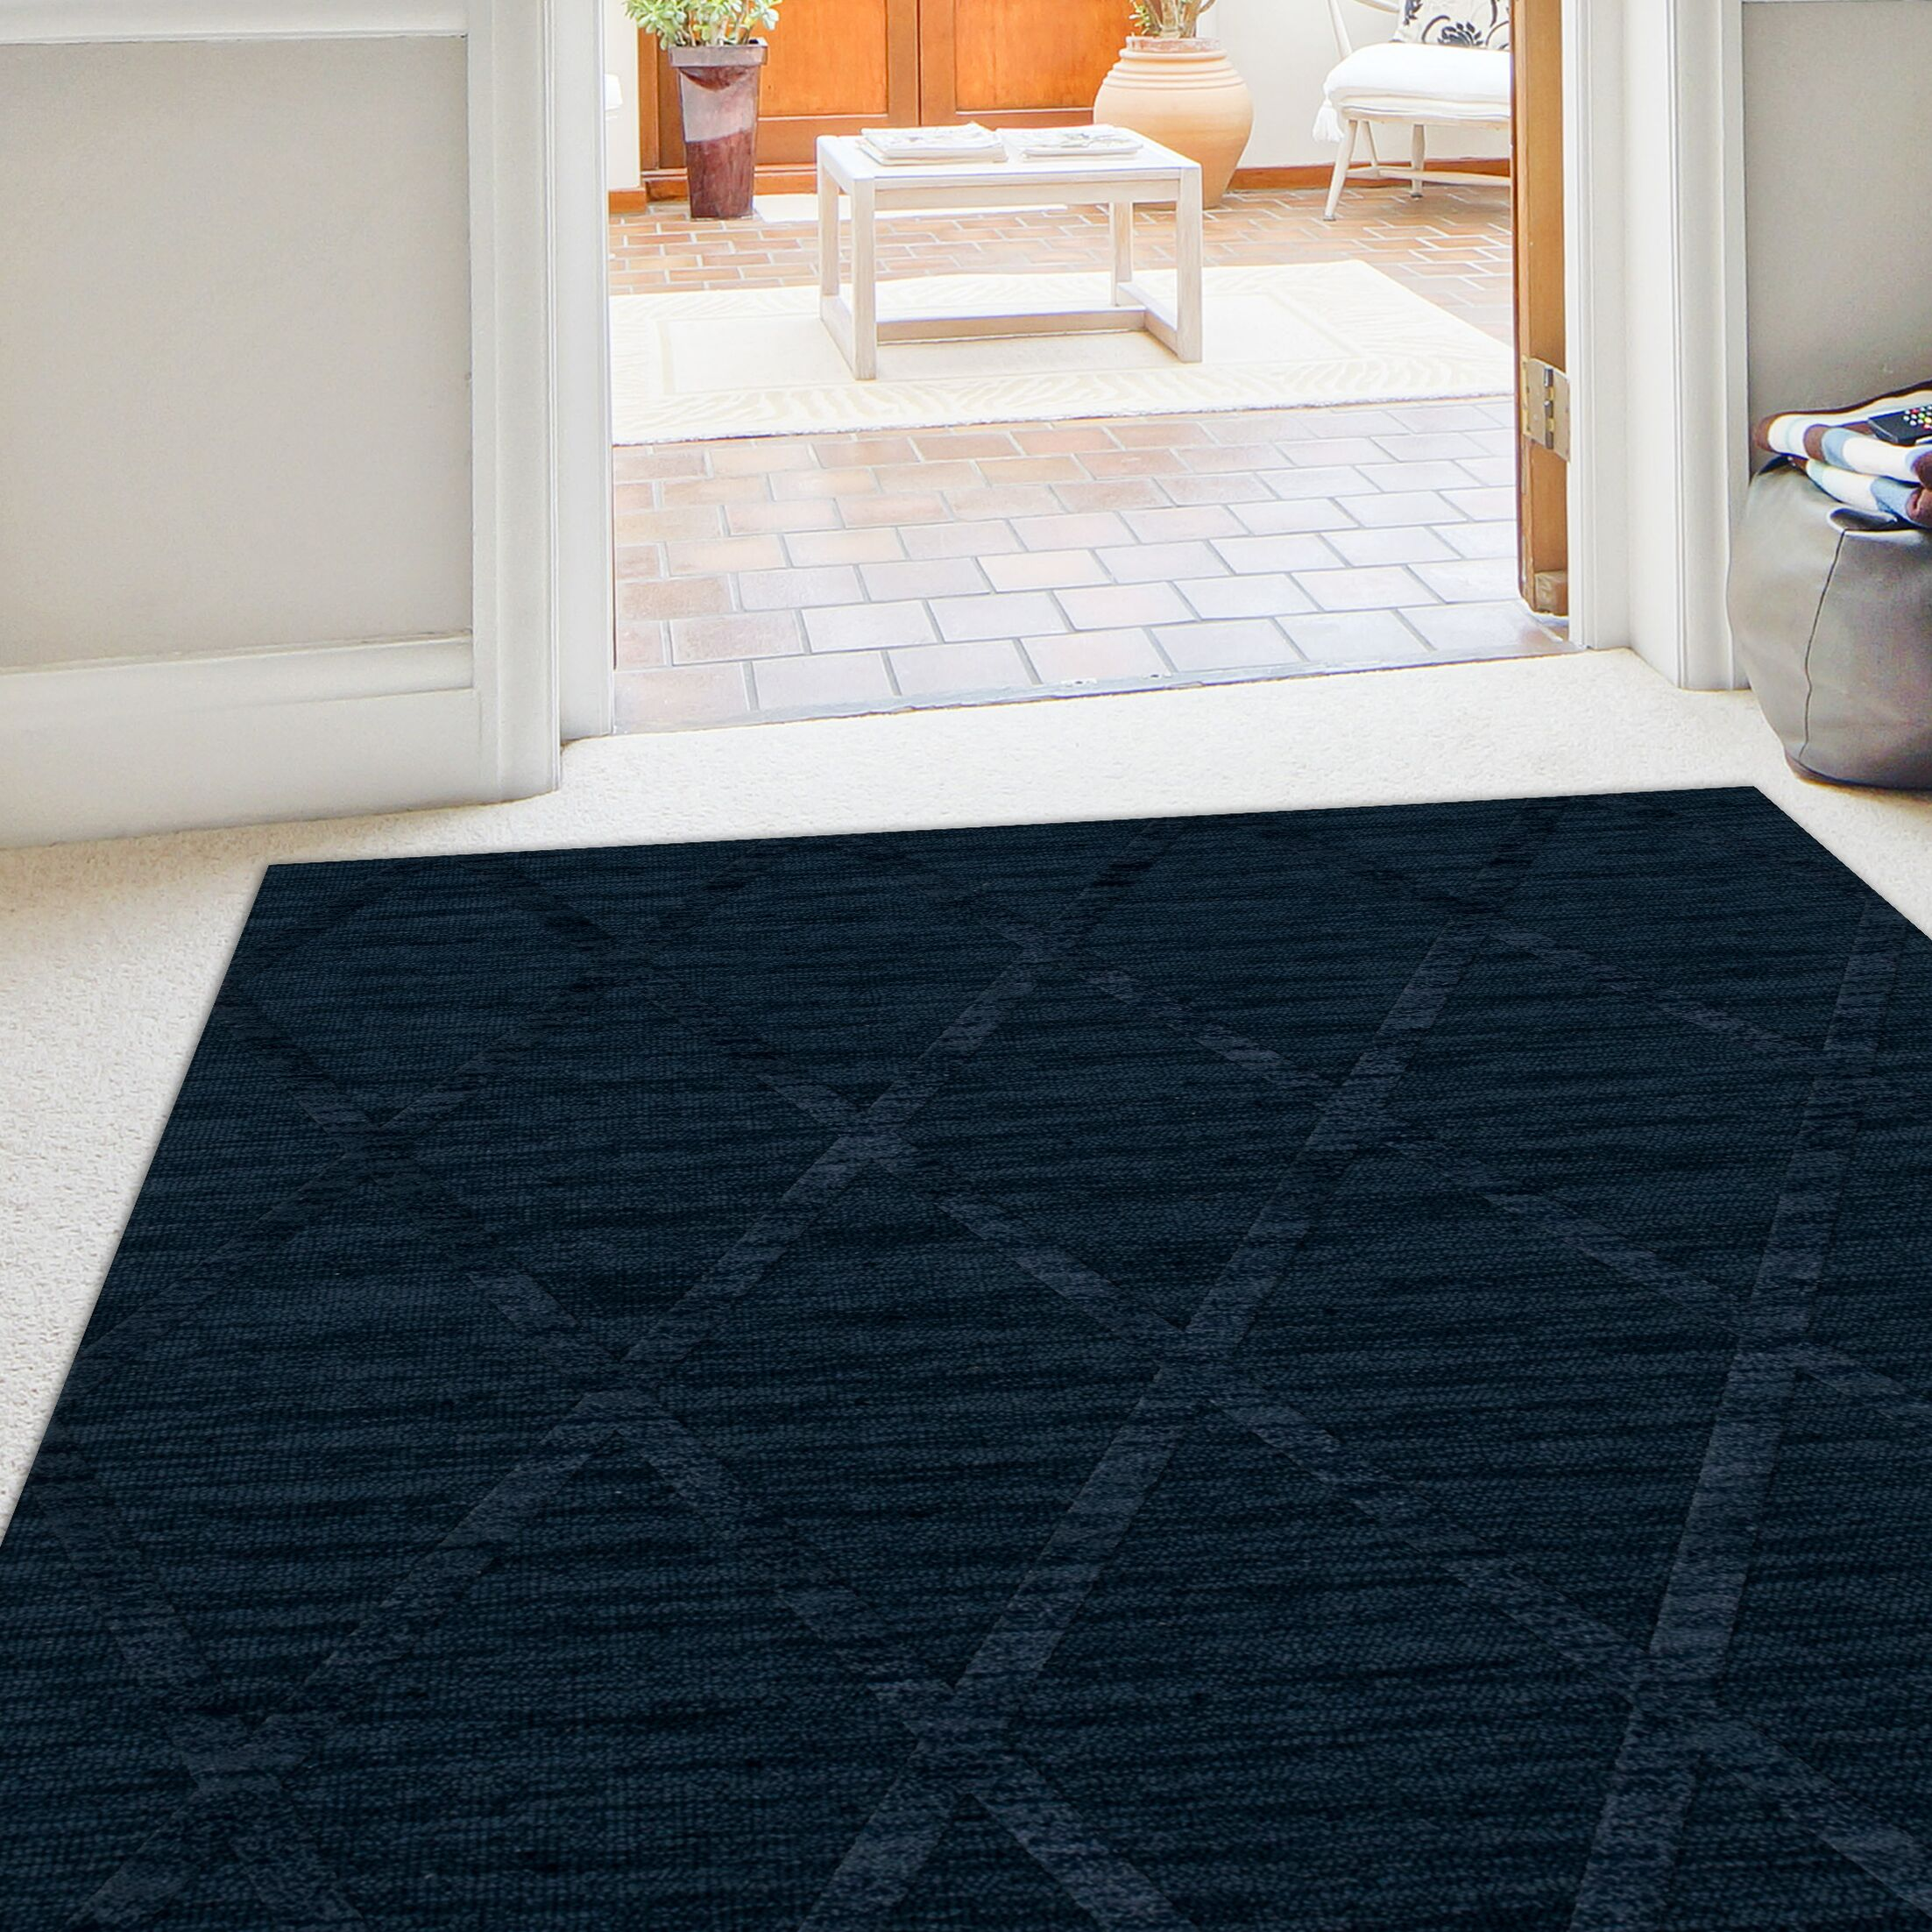 Dover Tufted Wool Navy Area Rug Rug Size: Square 6'